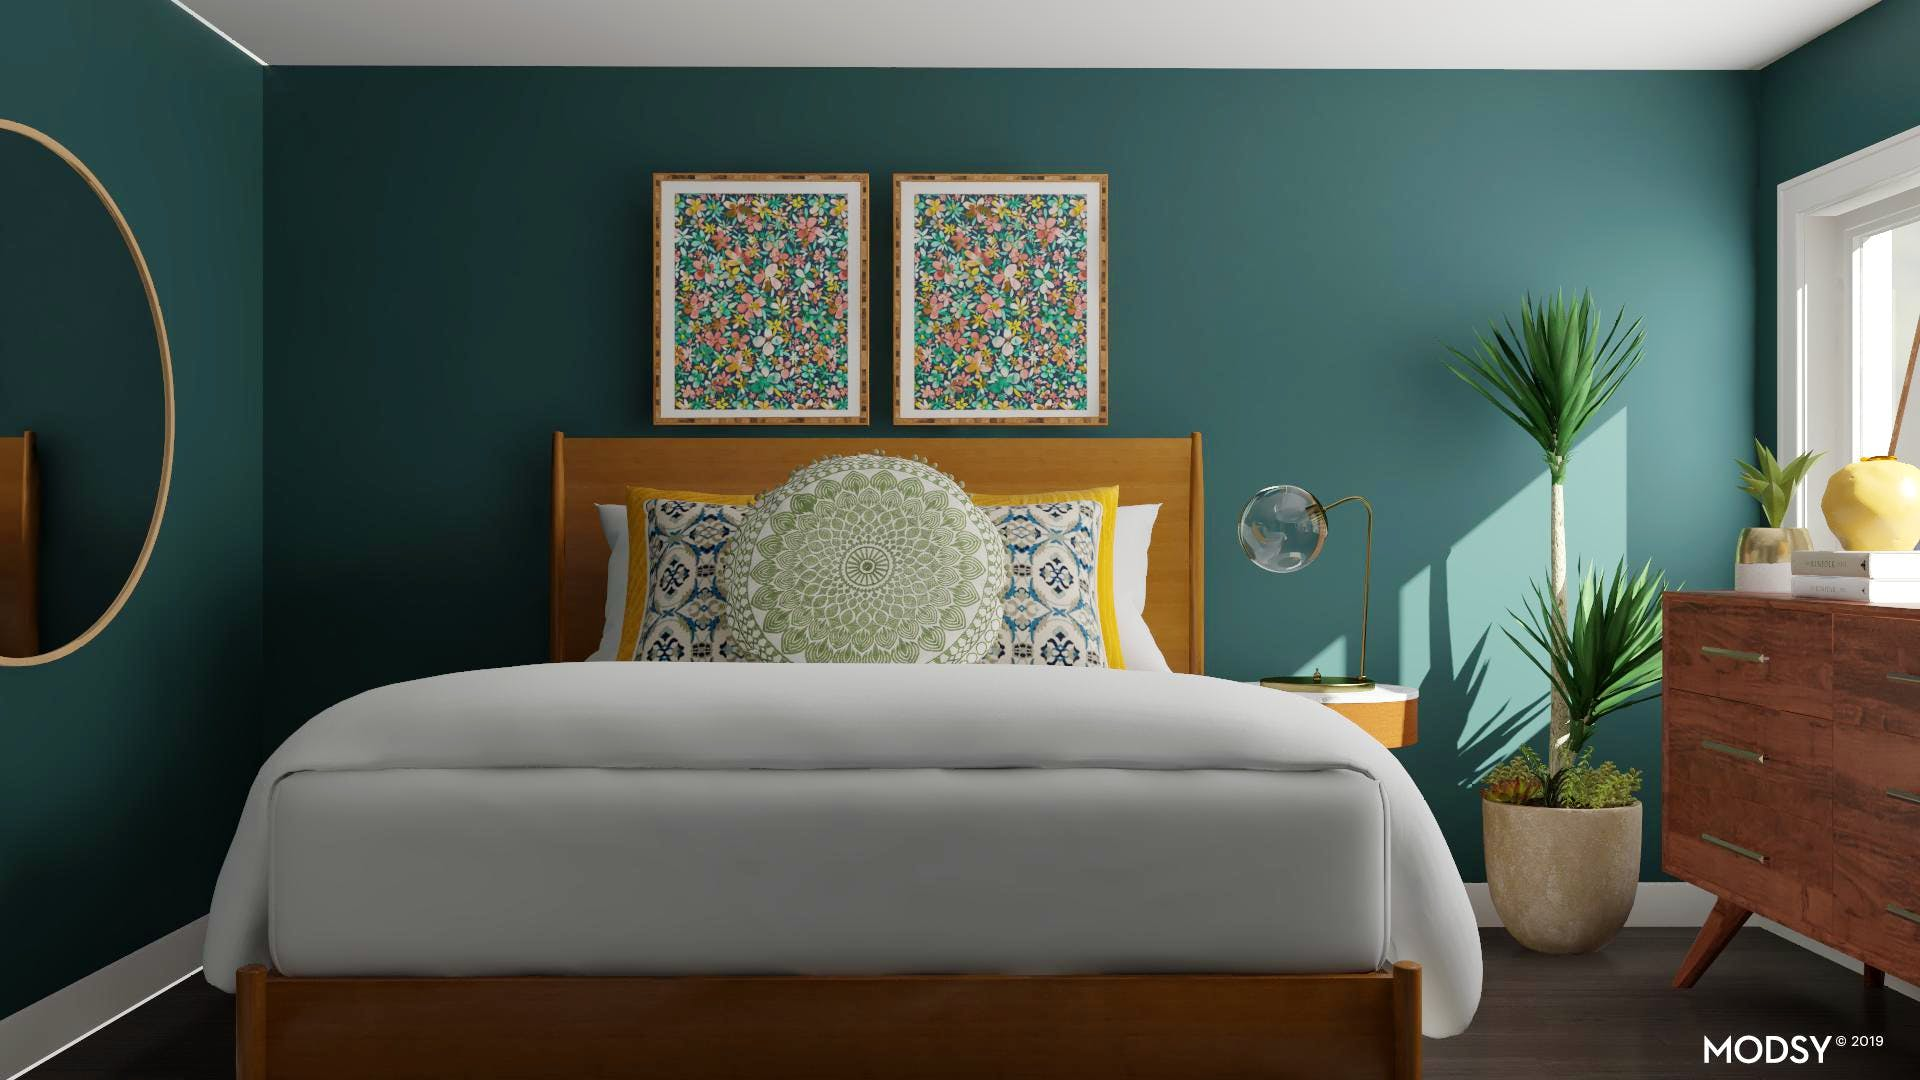 Mod Jewel Tones in a Small Space